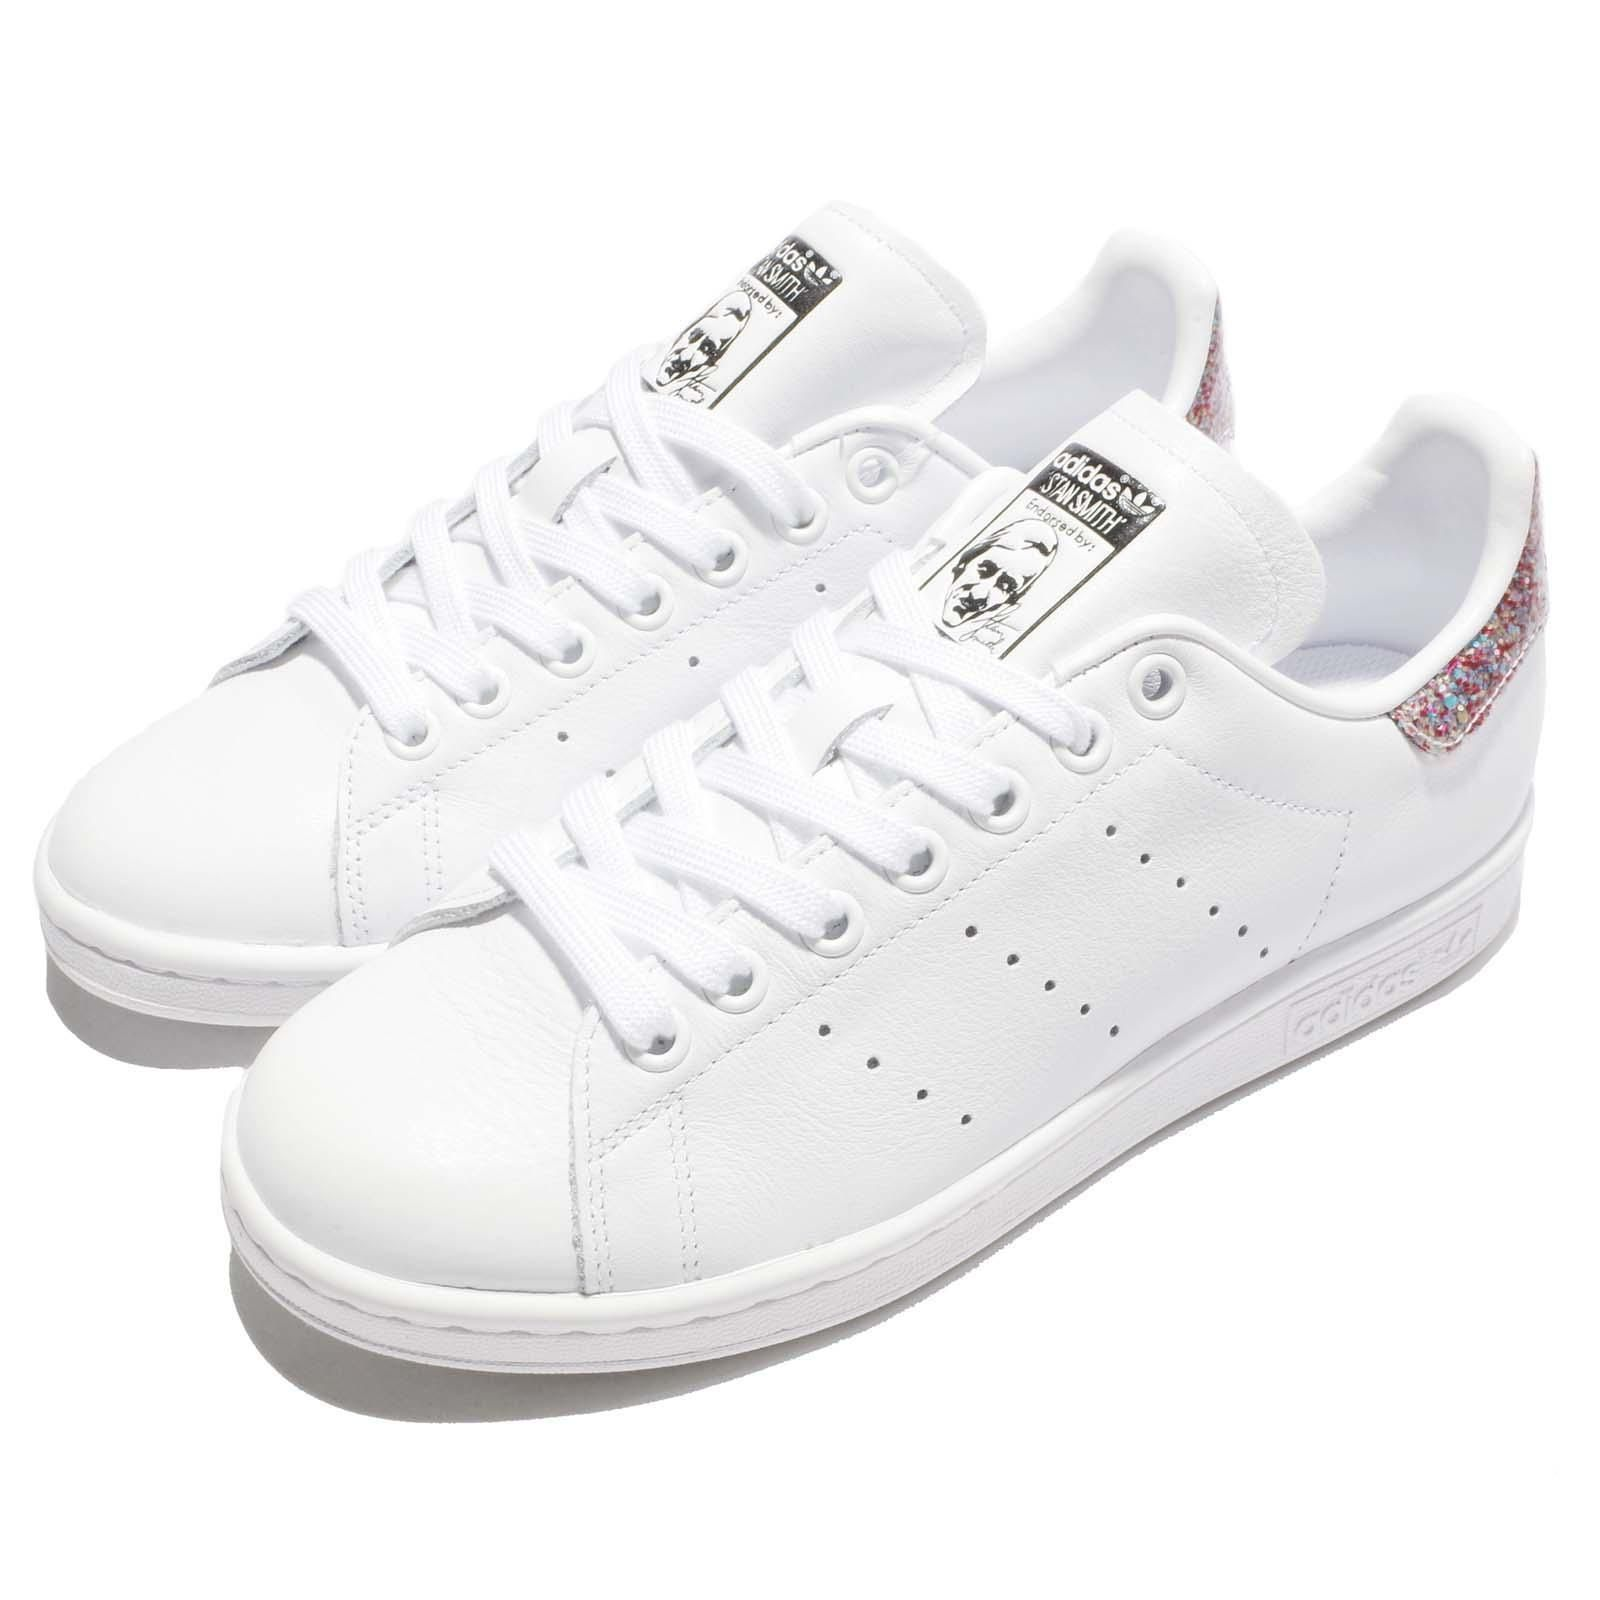 Adidas Originals Stan Smith W Glitter White Rainbow Women Shoes Sneakers  S76912 16b057a608